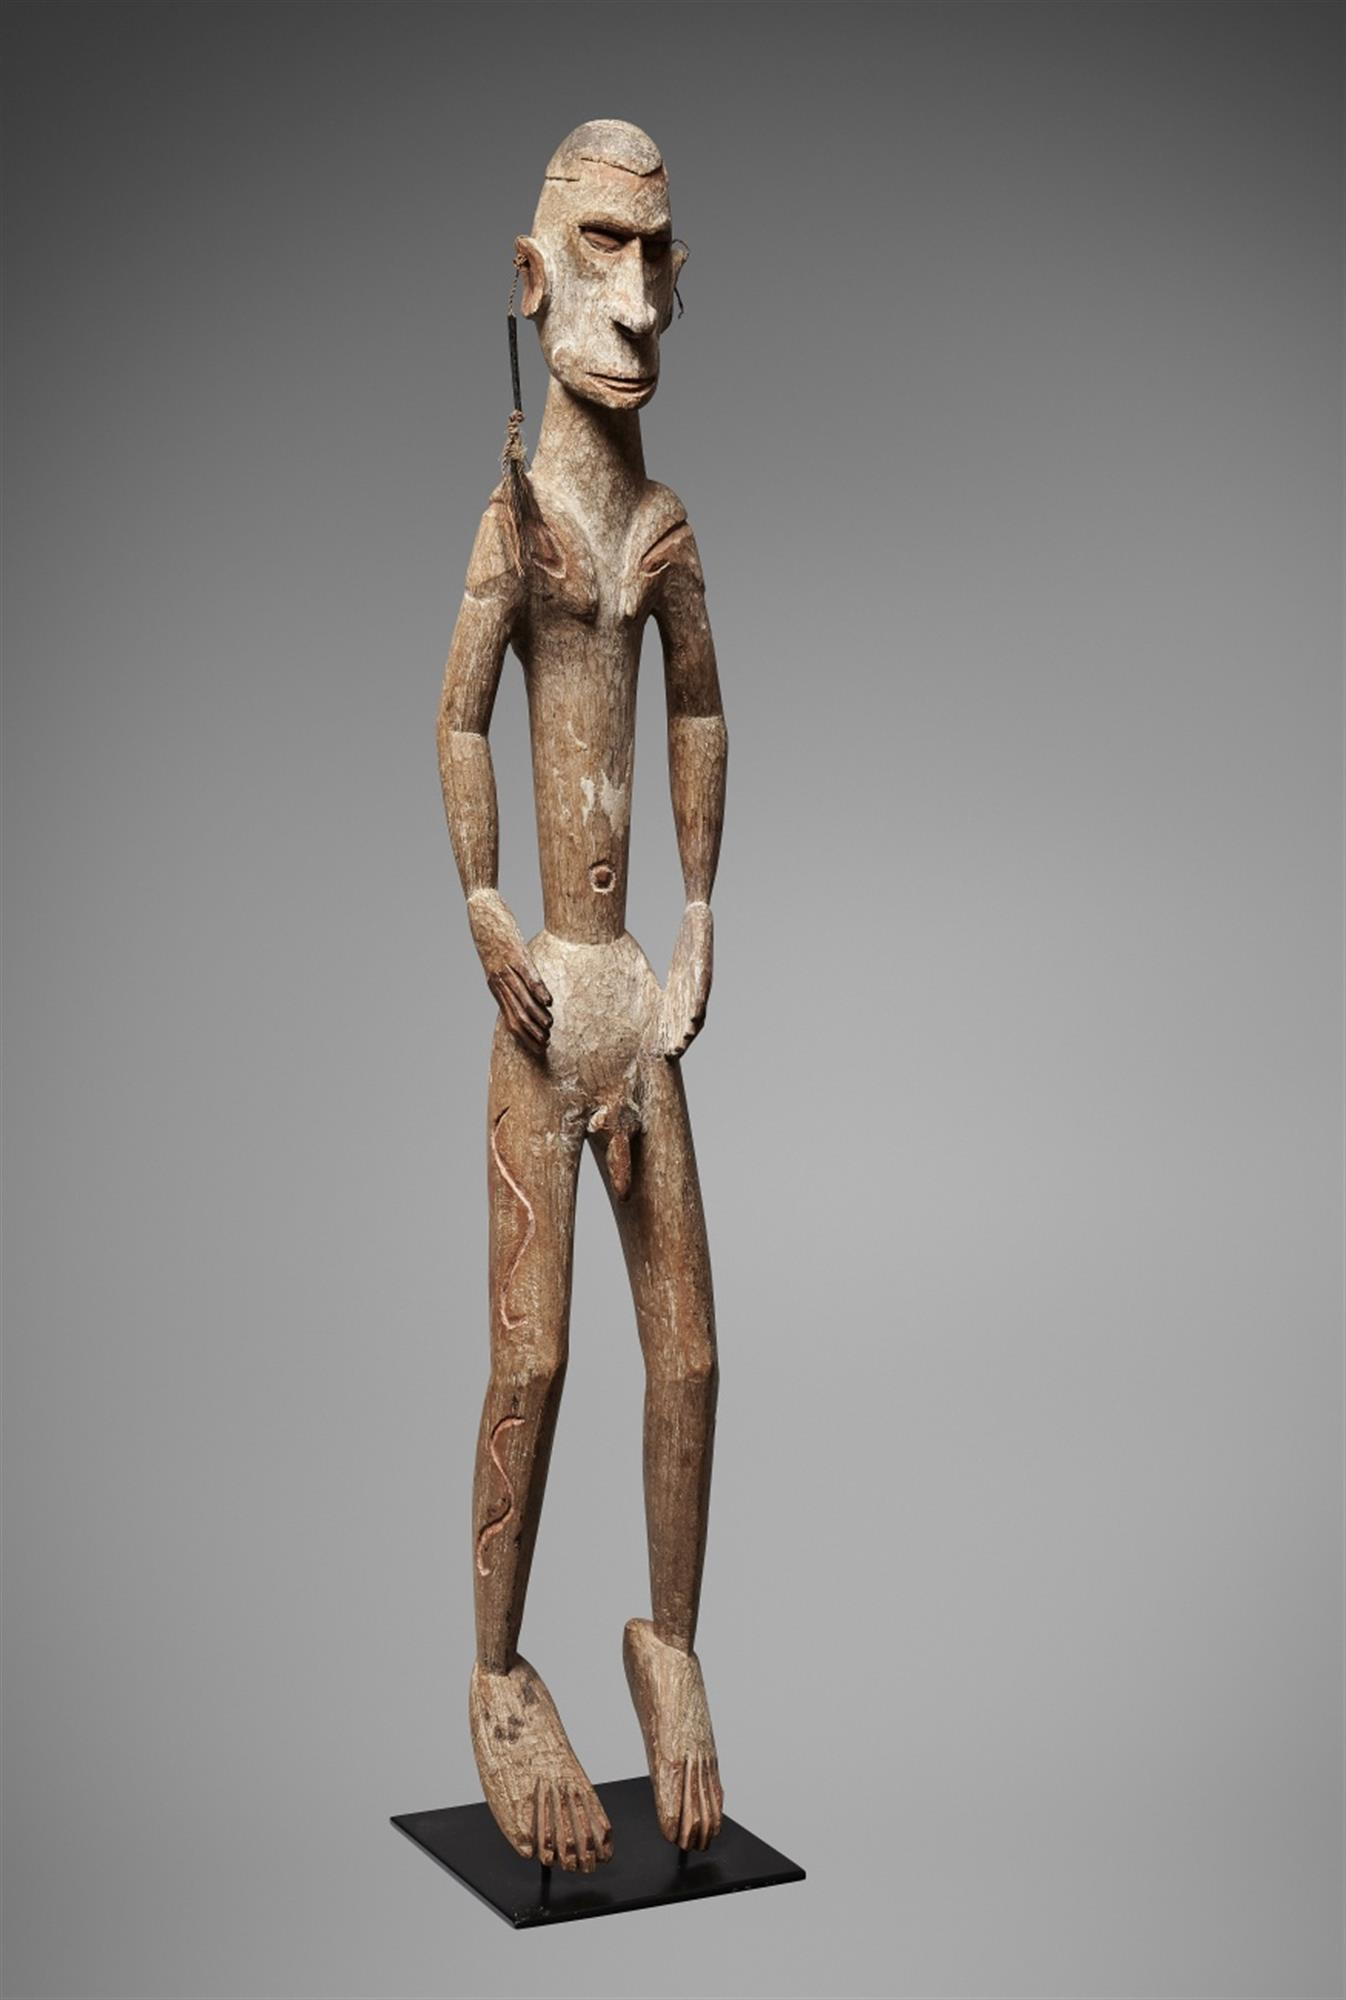 AN ASMAT FIGURE